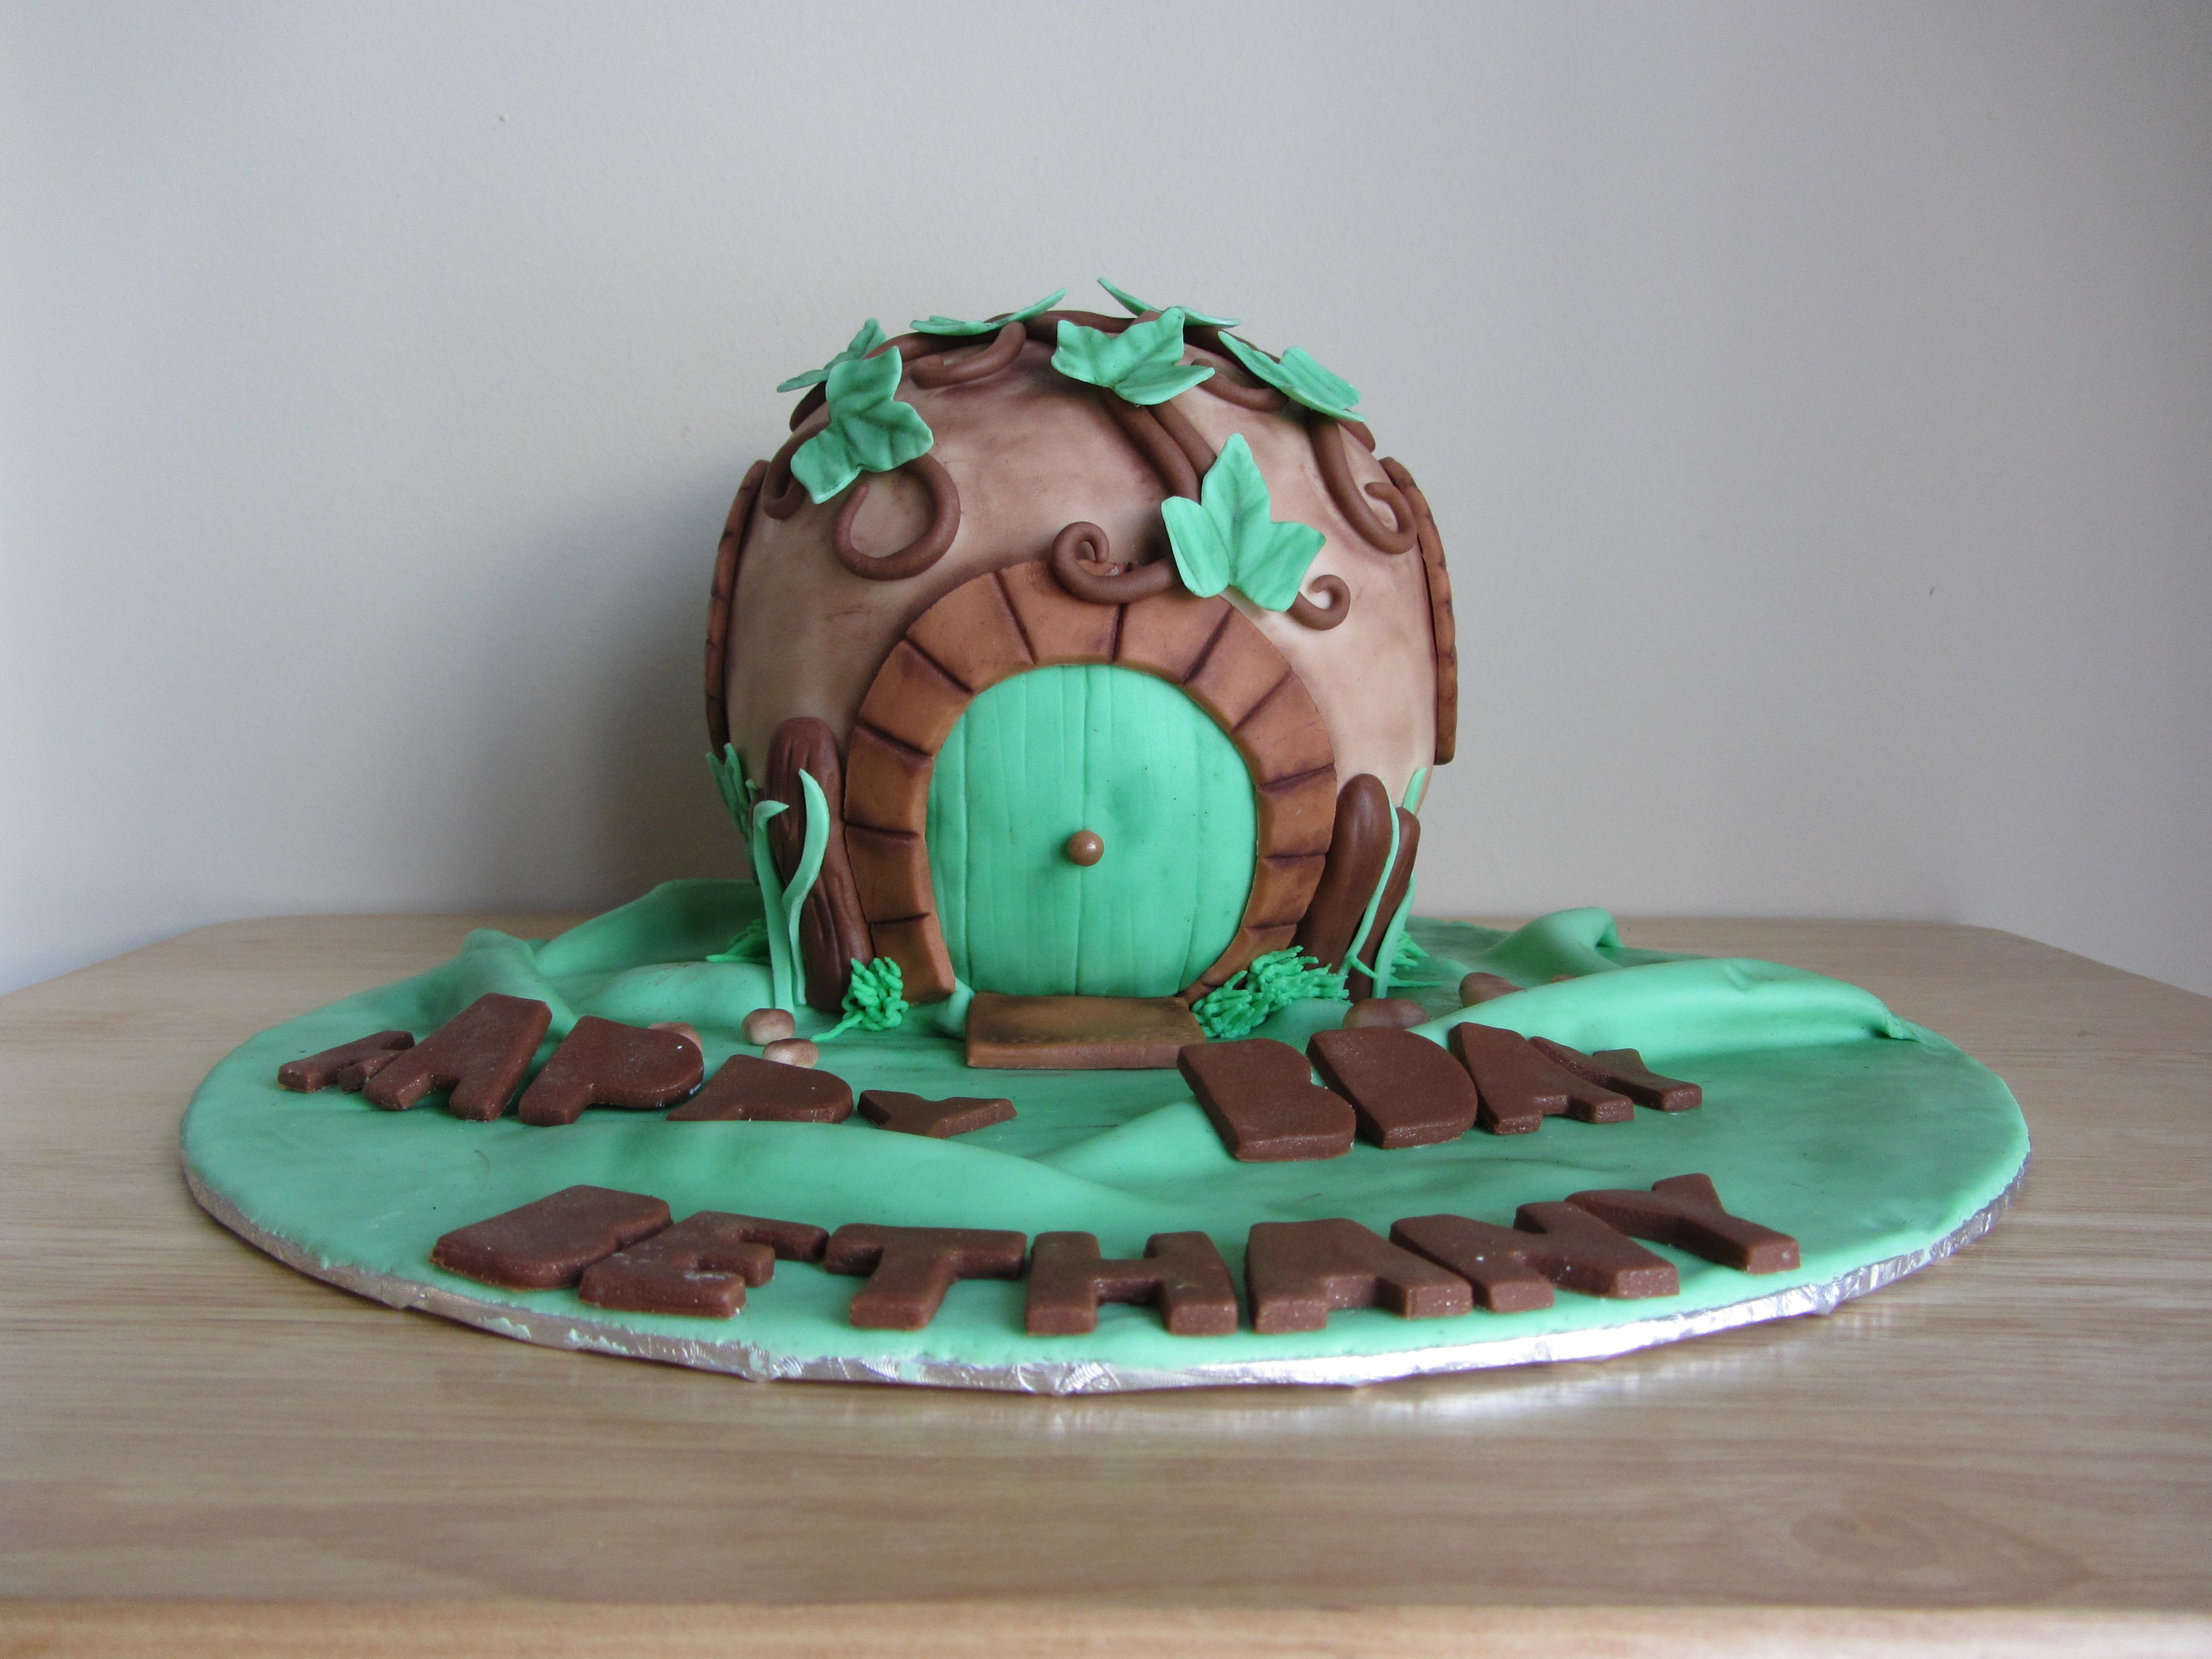 The Hobbit Birthday Cake For More Httpsfacebook